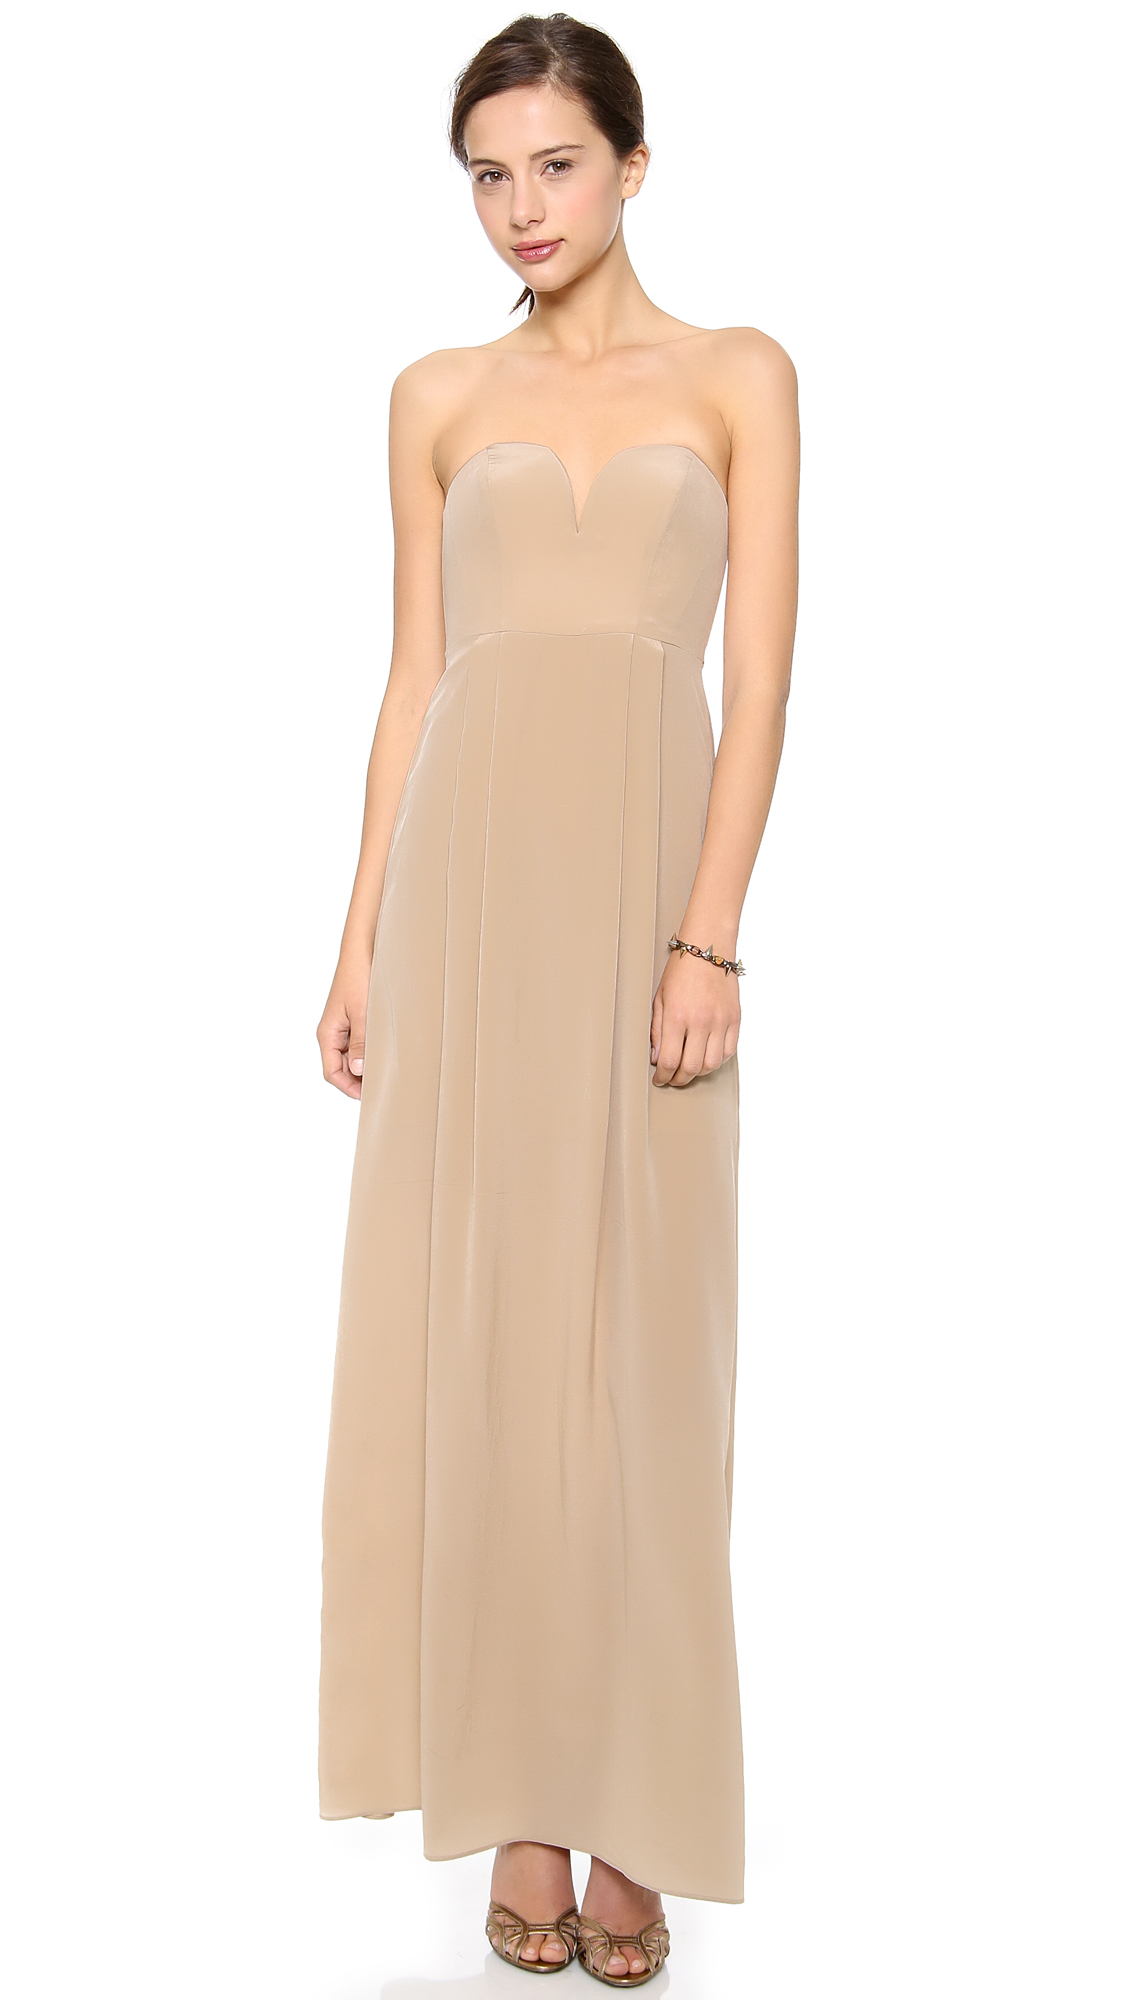 2a2b8970d7c5 Zimmermann Strapless Maxi Dress | SHOPBOP